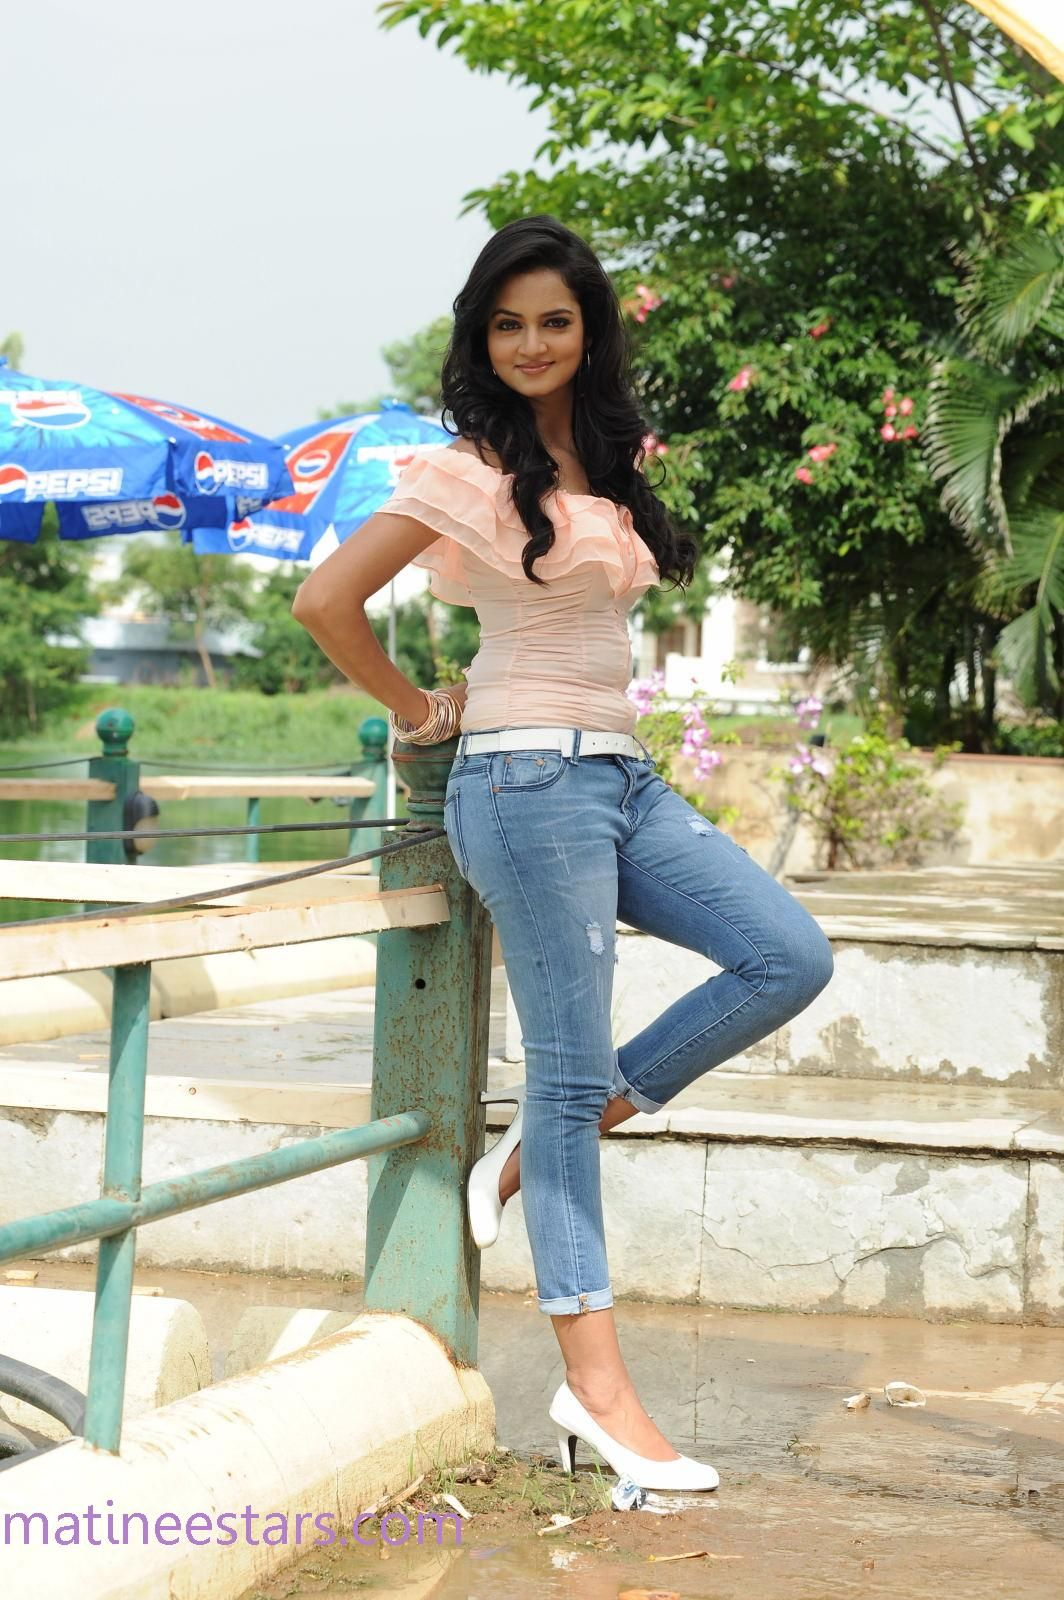 Shanvi Stills In Light Blue Jeans And Light Pink Top - Actress Gallery - High Resolution Pictures 17